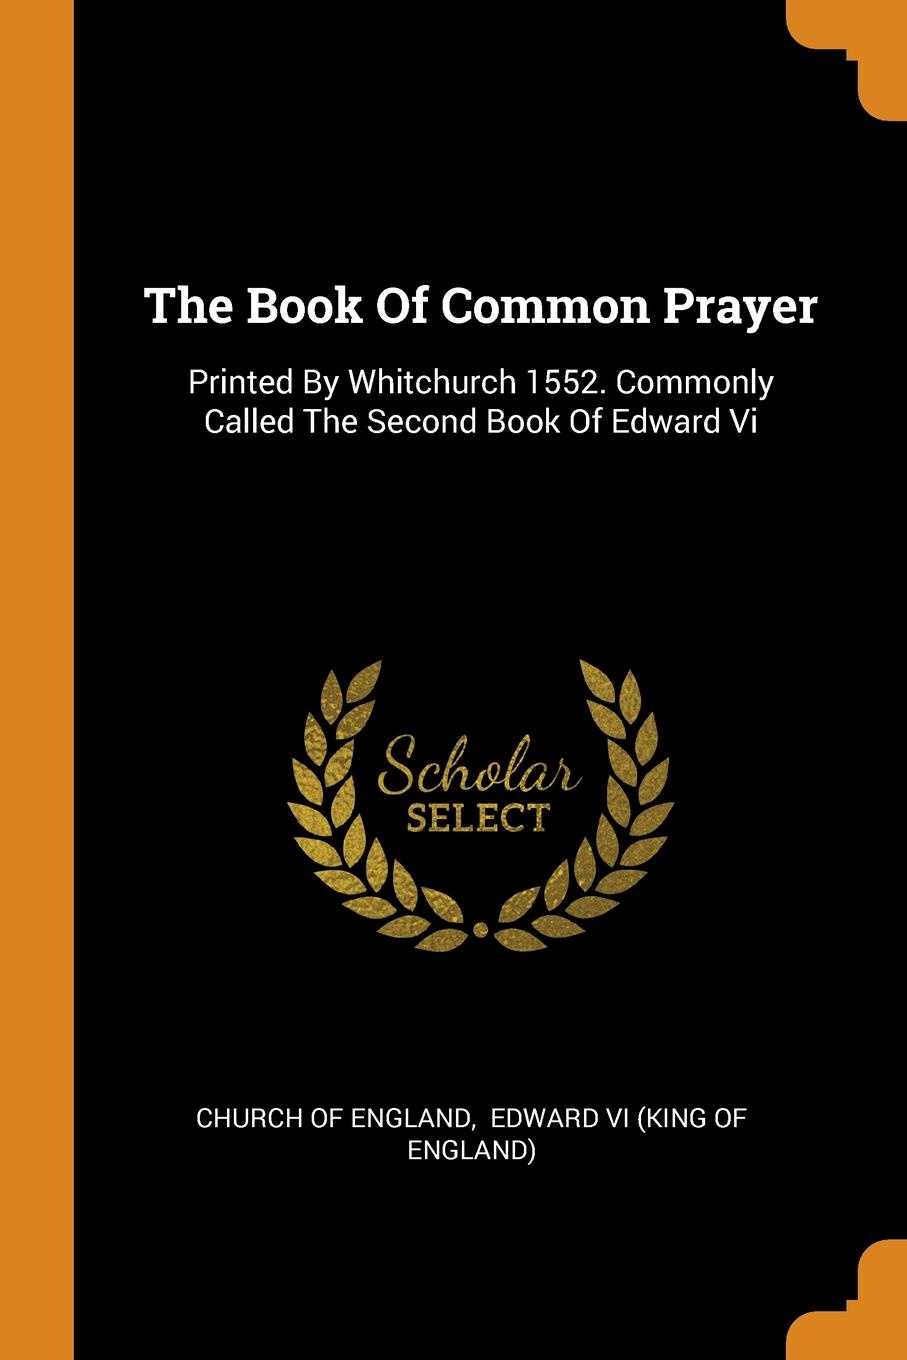 Church of England The Book Of Common Prayer. Printed By Whitchurch 1552. Commonly Called The Second Book Of Edward Vi